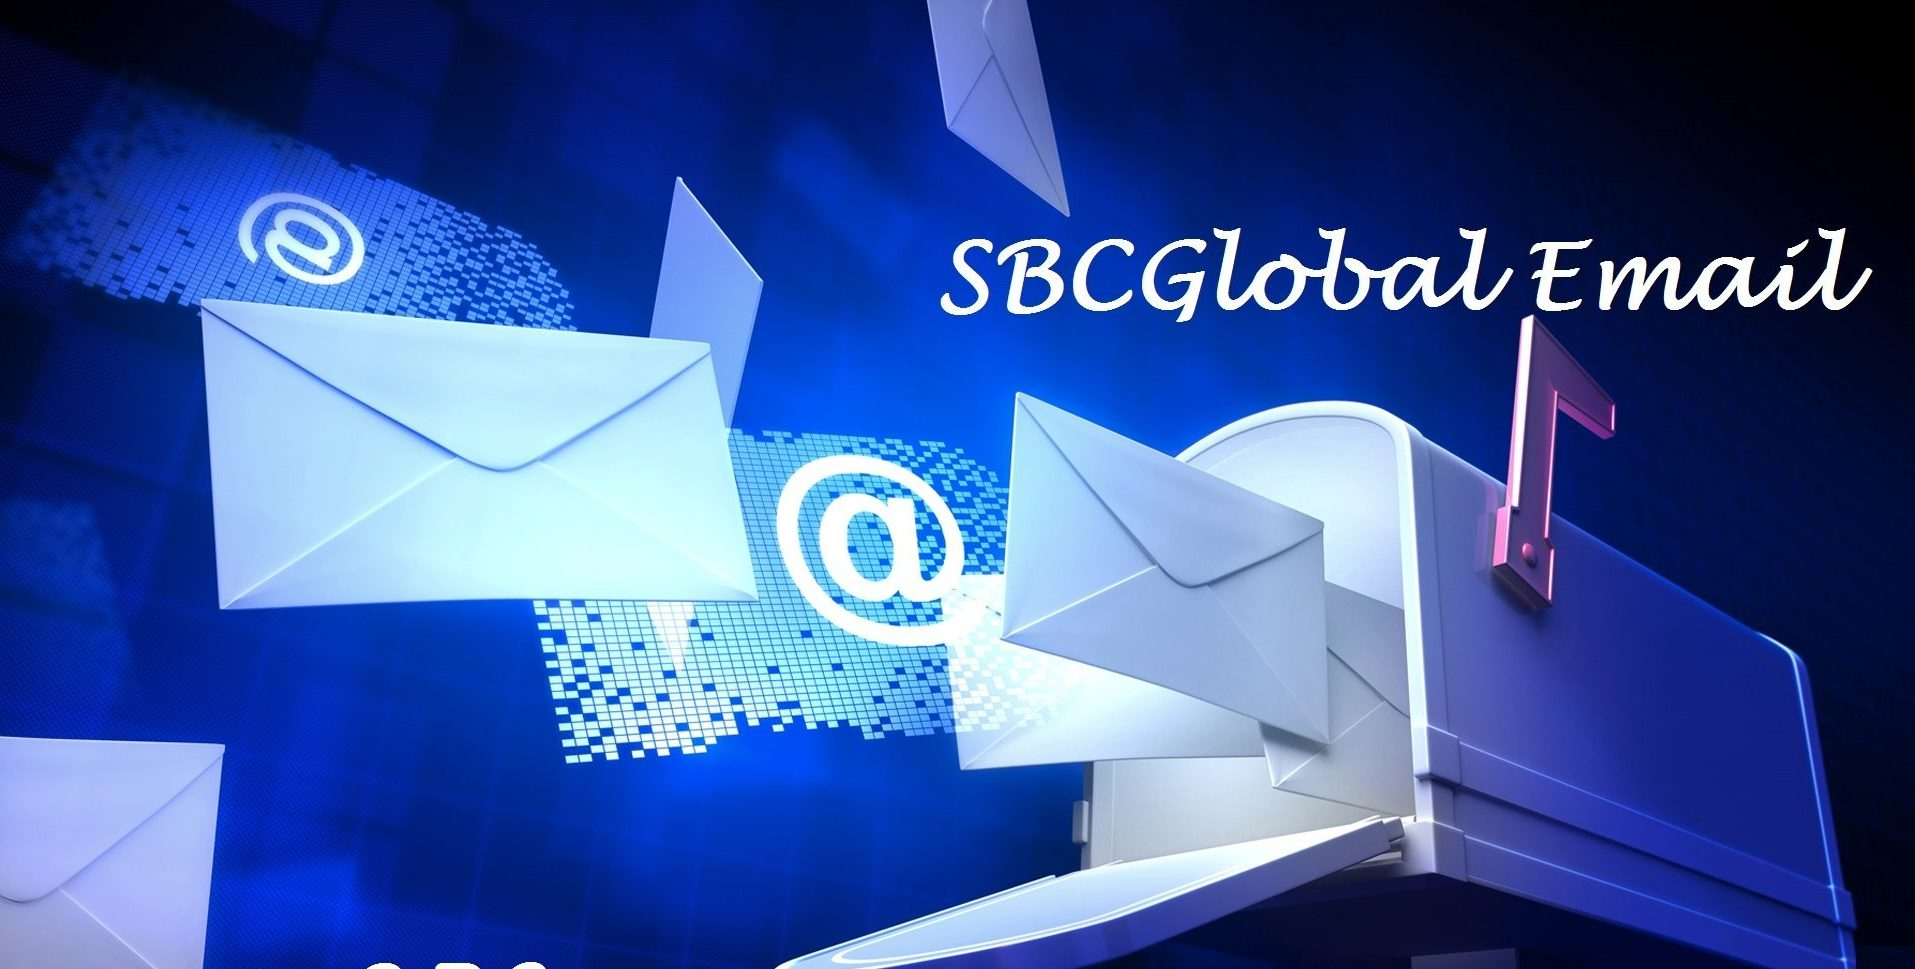 at&t net email login, SBCglobal net mail,